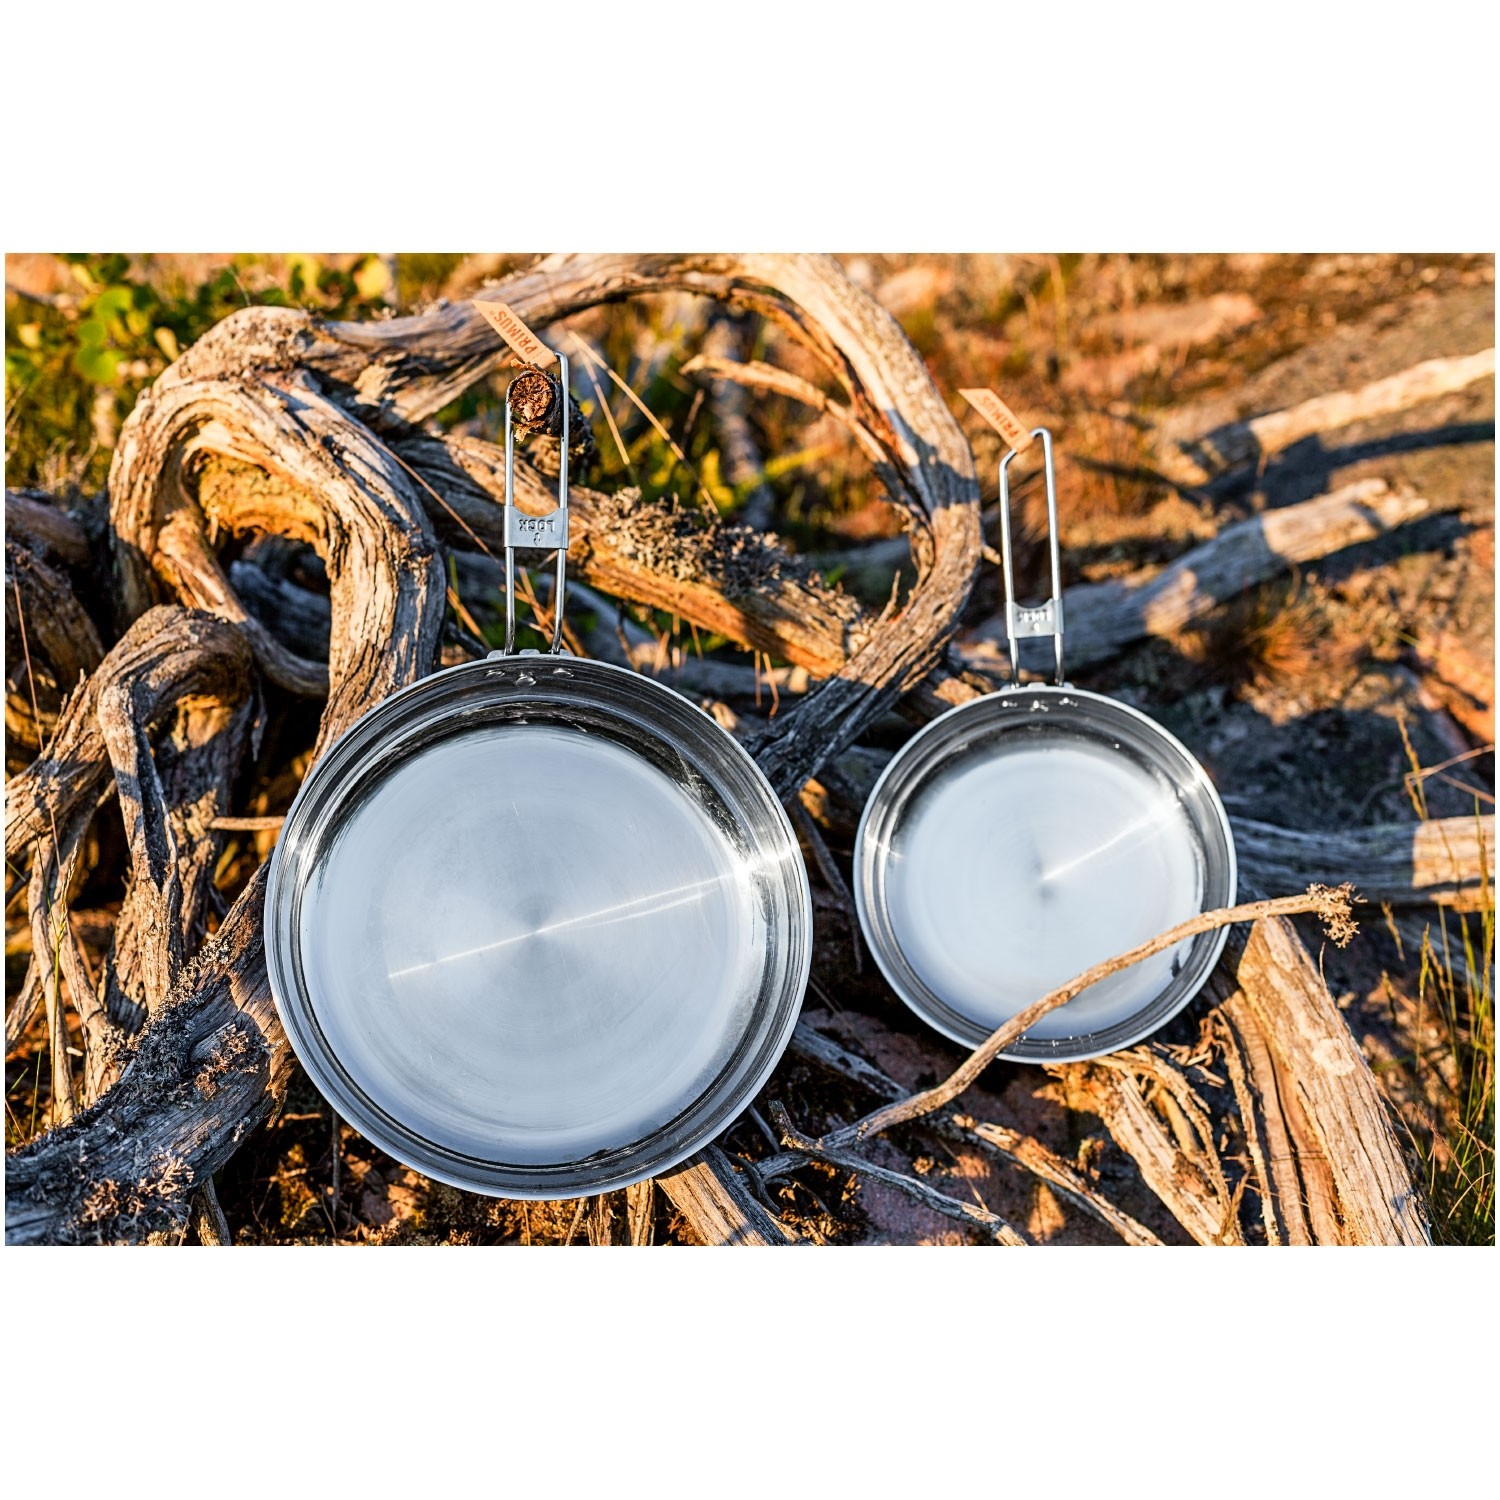 Primus Campfire Frying Pan